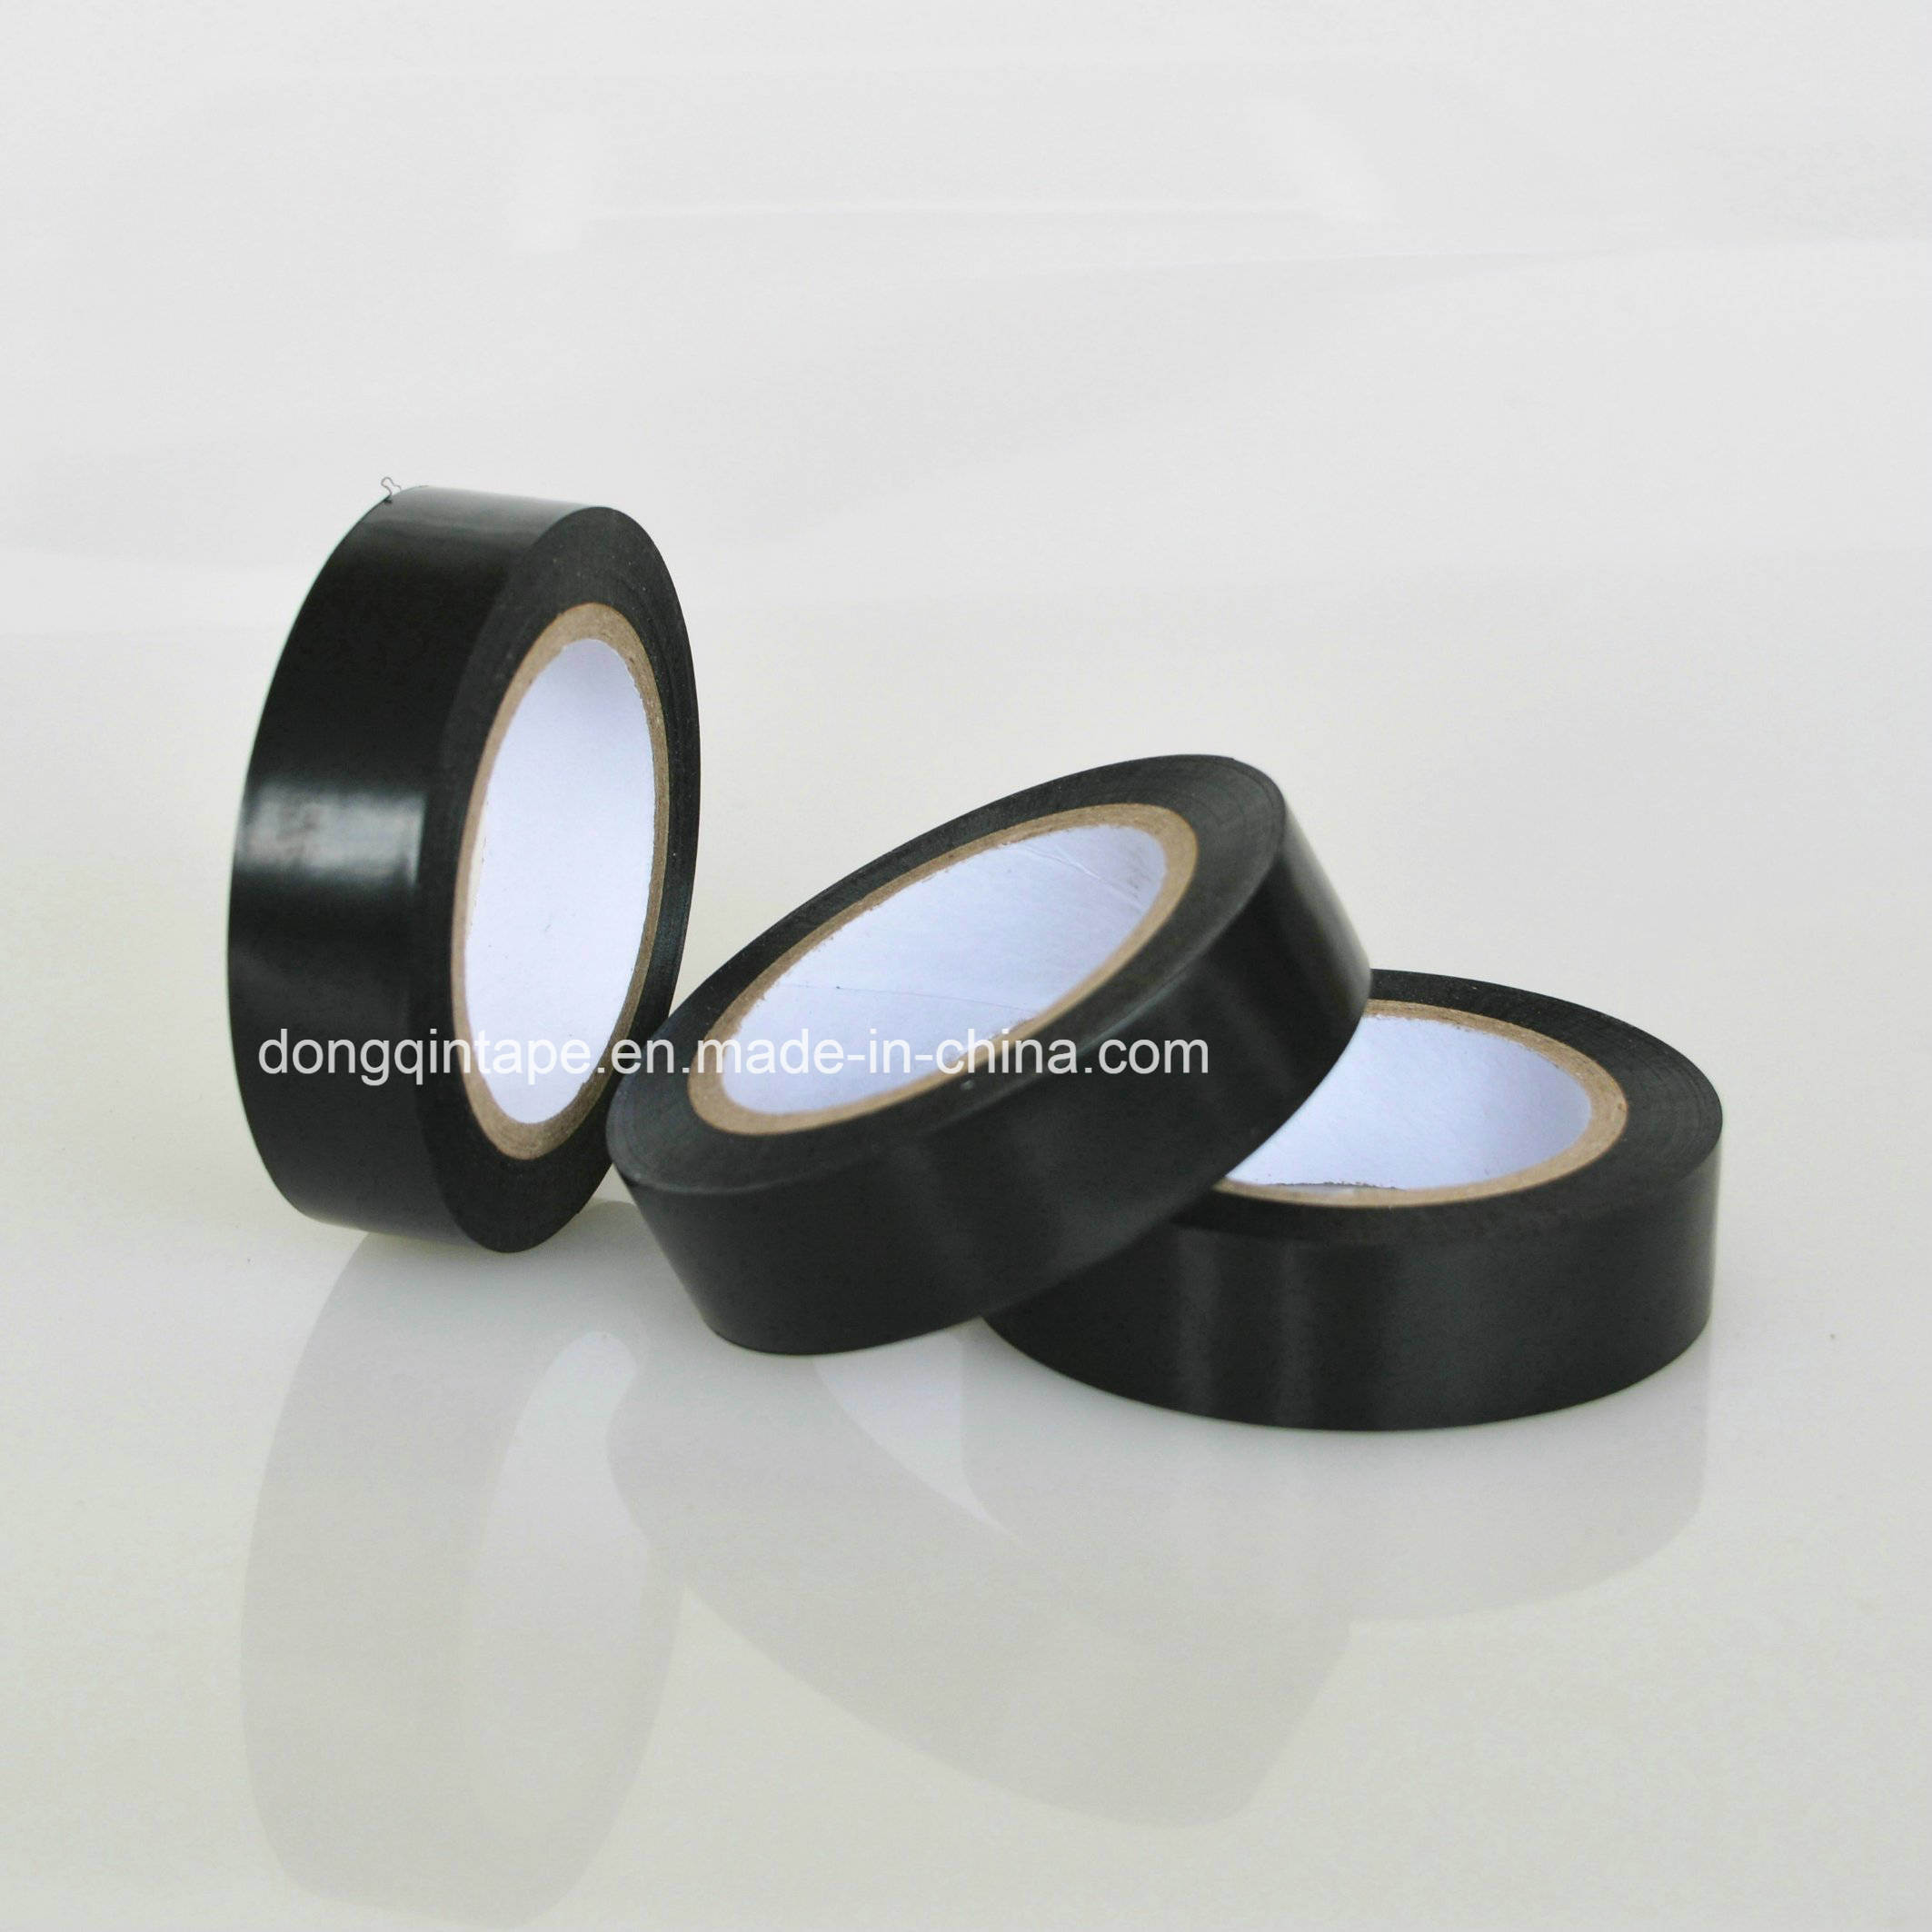 China Premium Quality Matt Pvc Electrical Insulation Tape For Wire Harness 19mm Protecting Adhesive